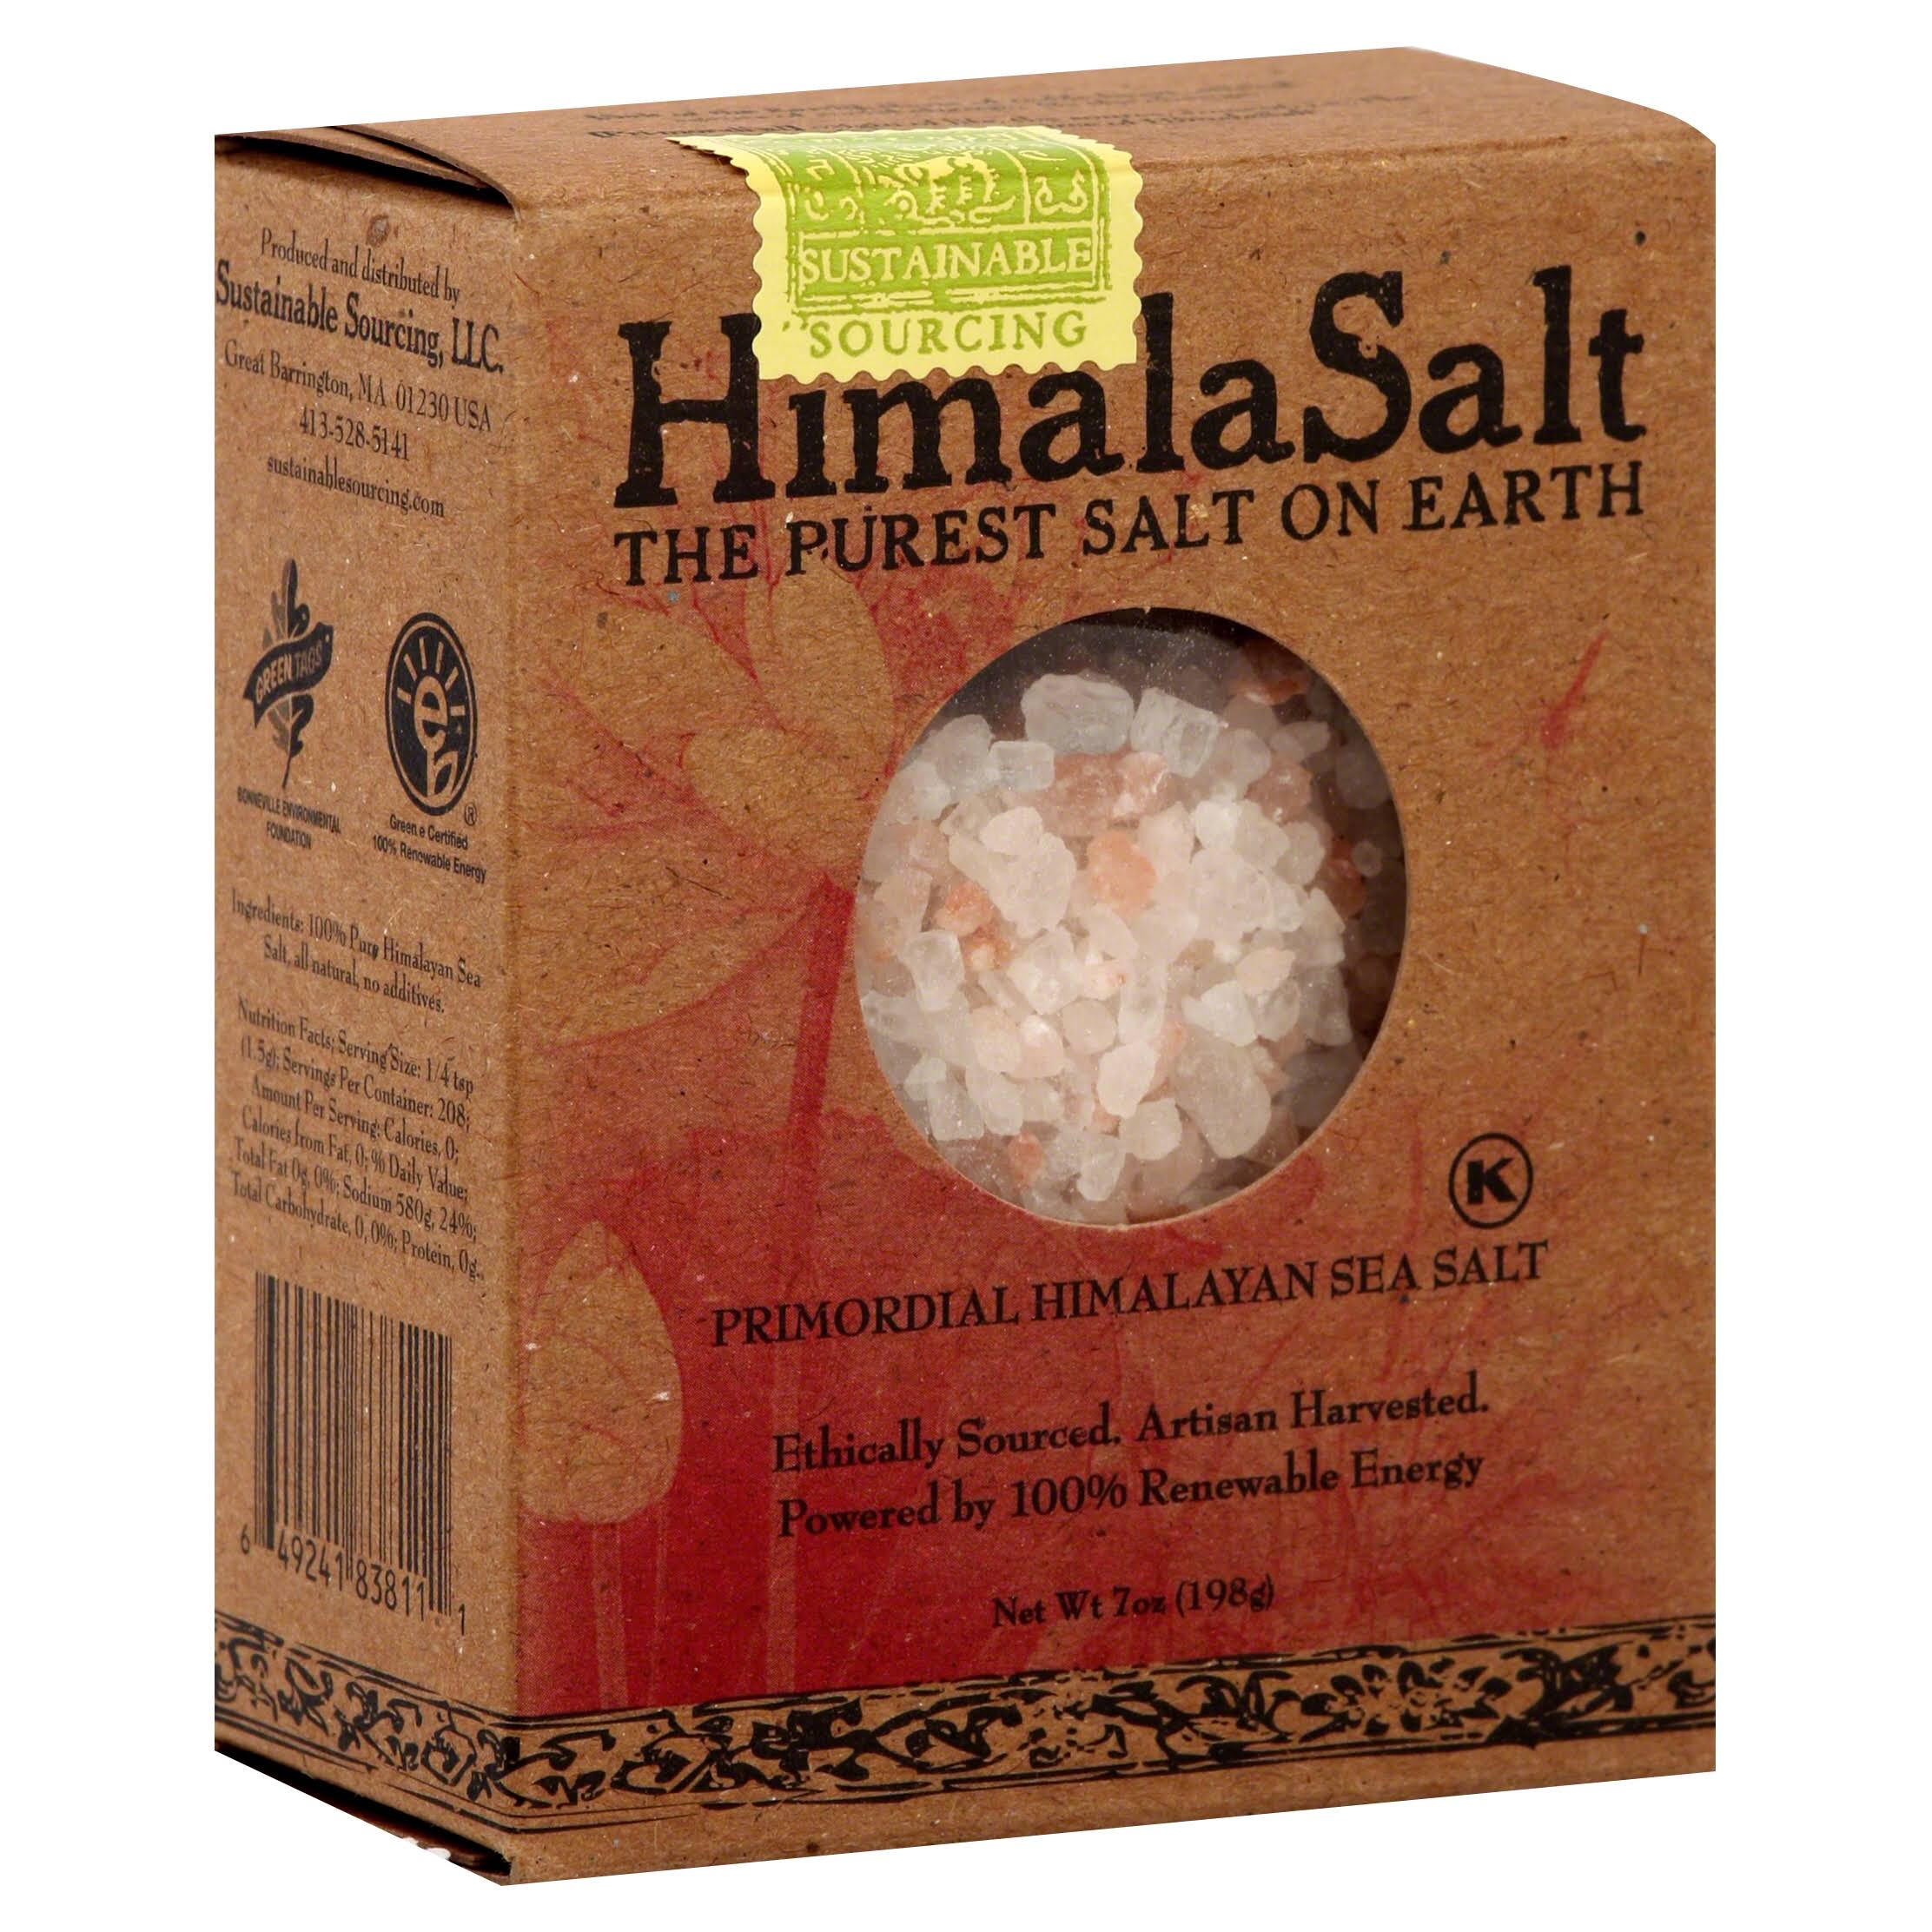 Sustainable Sourcing Himala Salt Primordial Himalayan Sea Salt